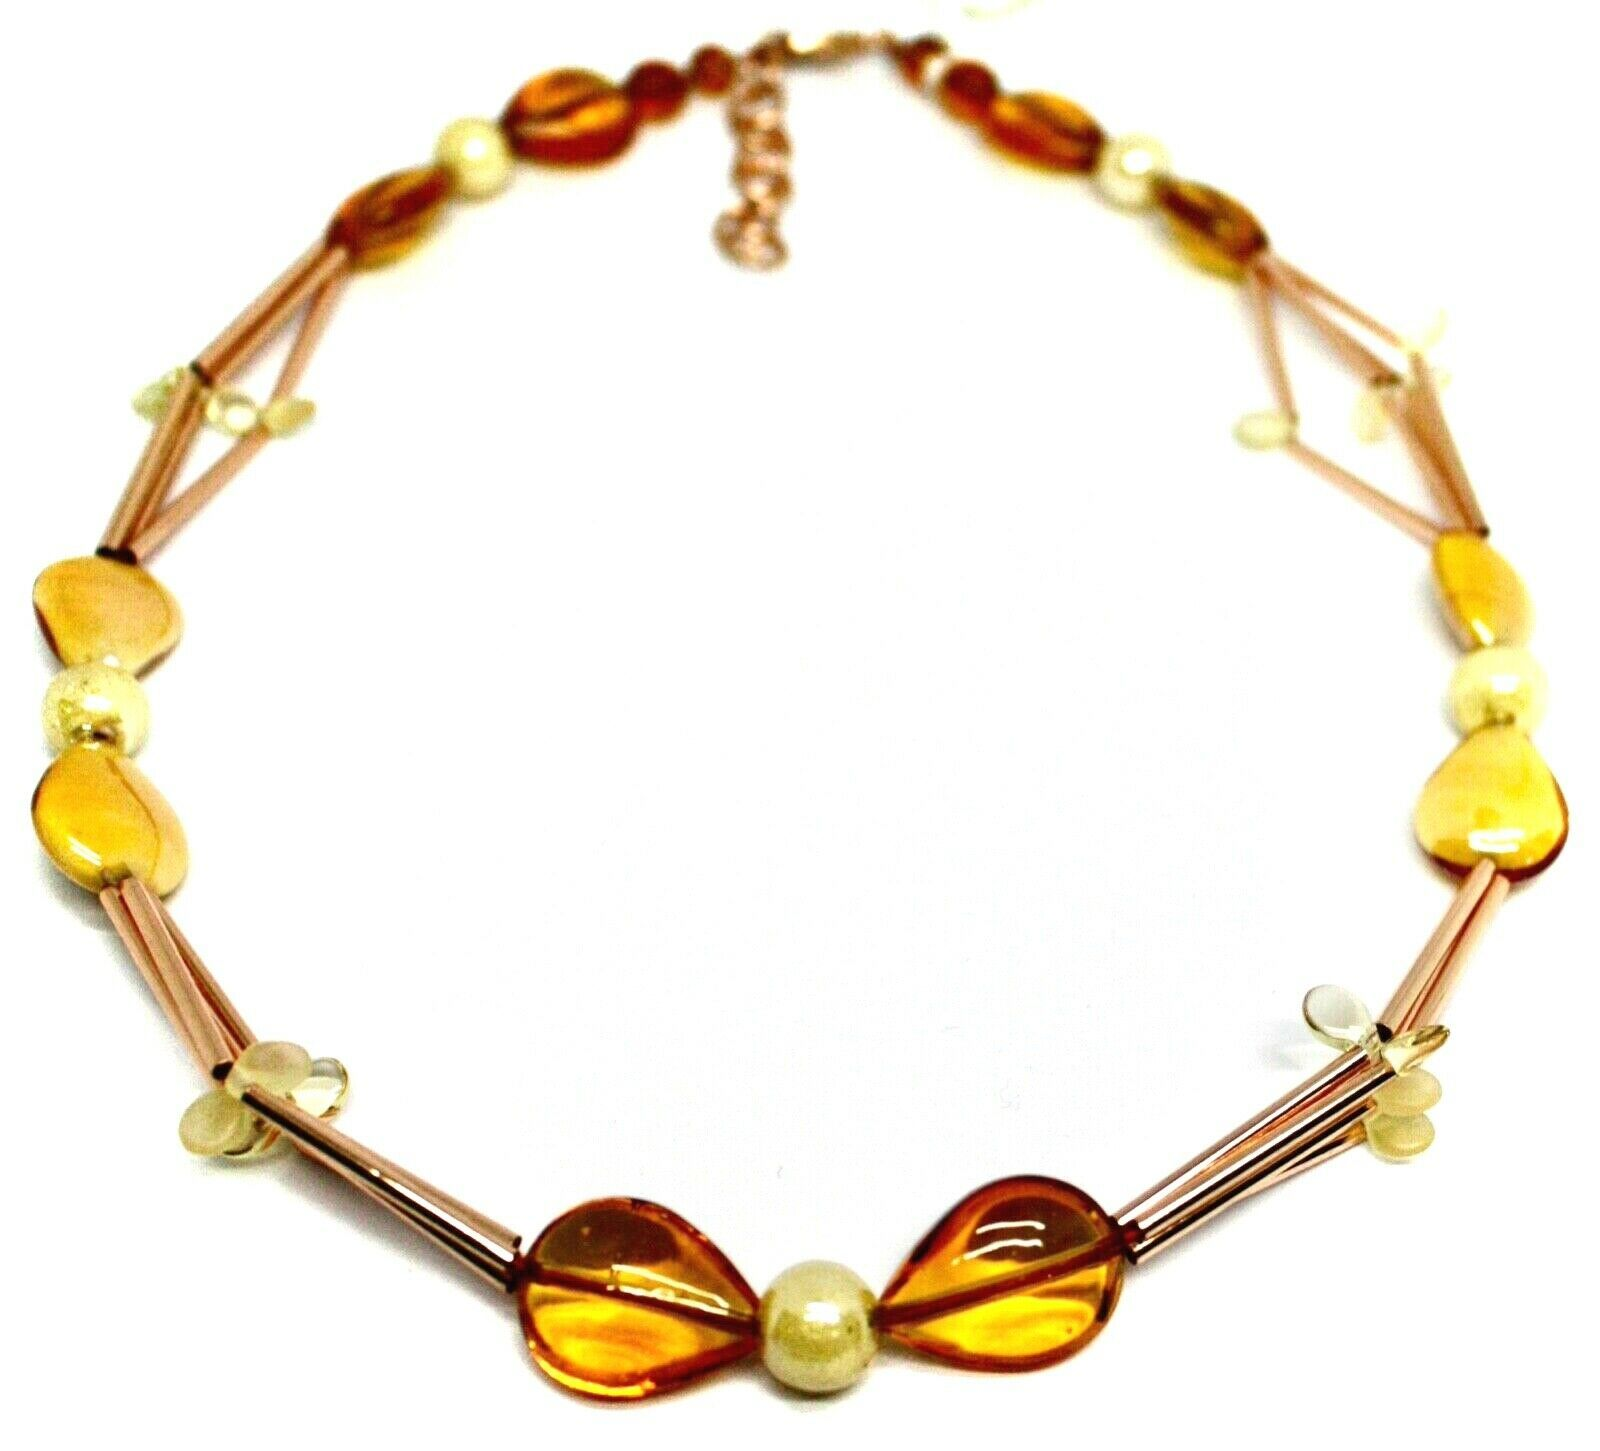 """ROSE NECKLACE TUBE ORANGE DROPS SPHERES PETALS MURANO GLASS, 50cm 20"""" ITALY MADE"""